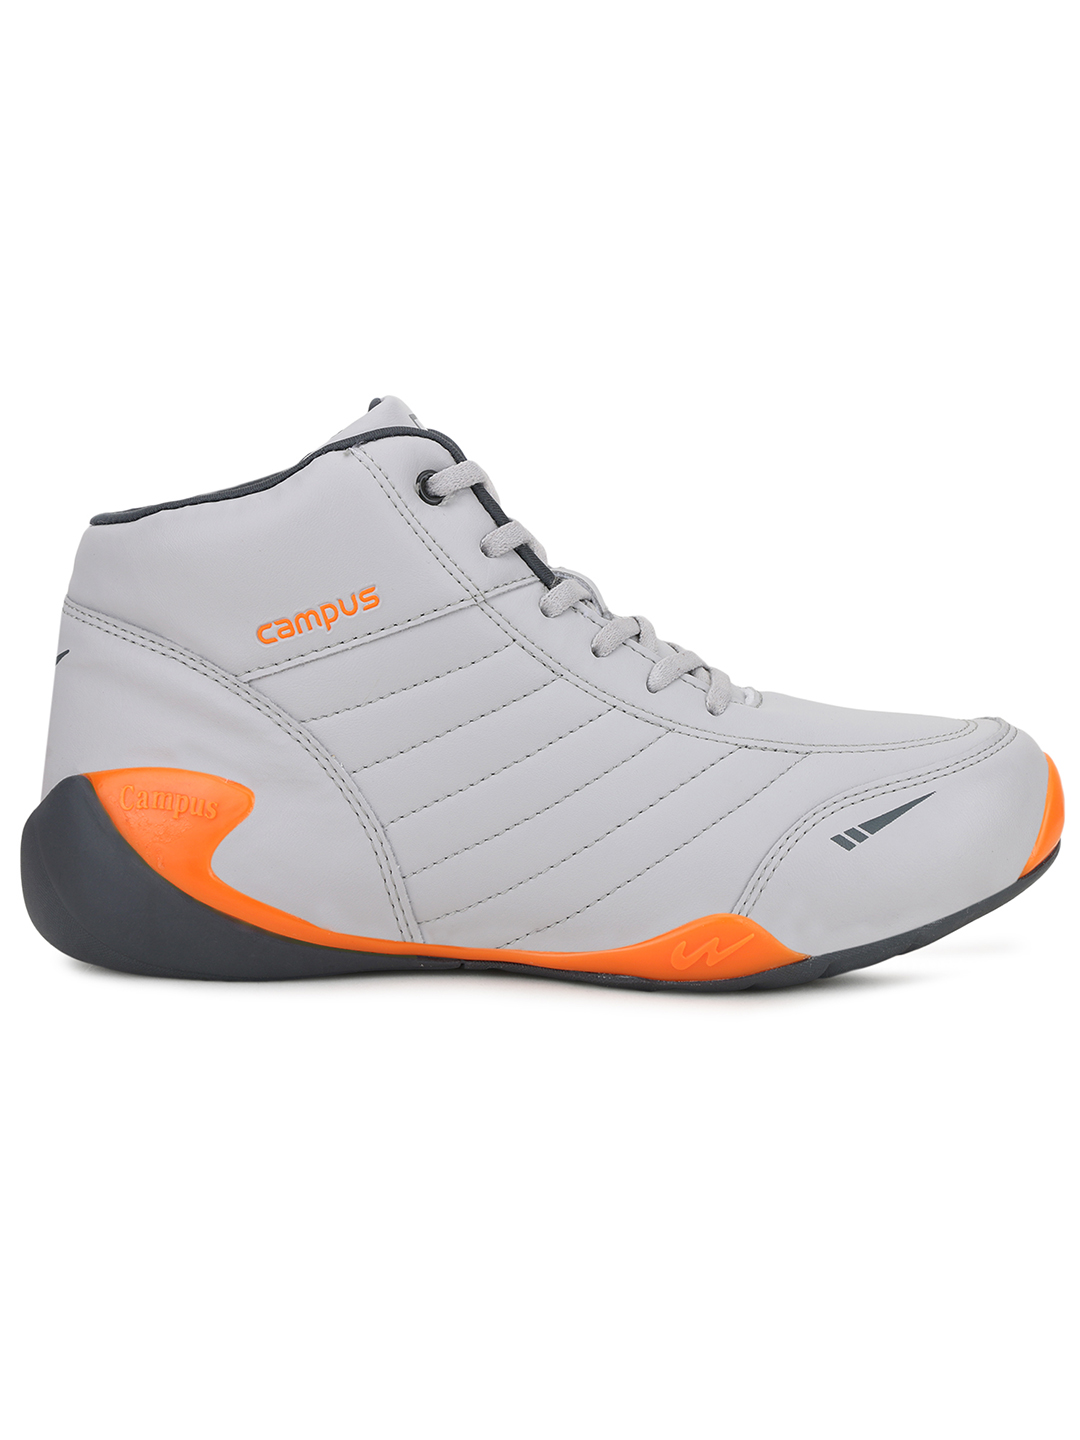 Campus Shoes   Grey Everest Running Shoes